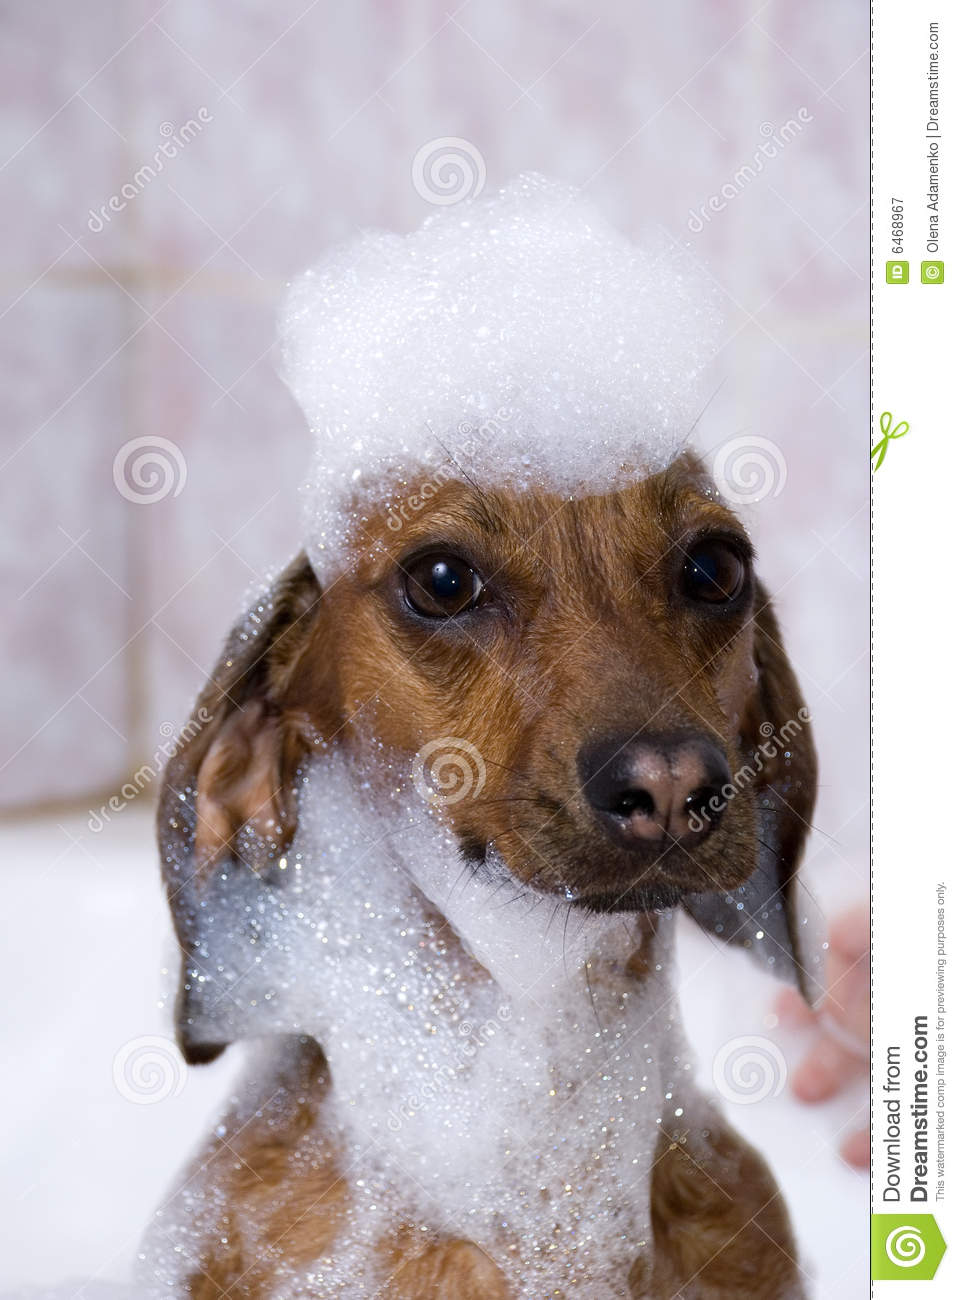 Download The dog have a bath stock image. Image of gloves, health - 6468967